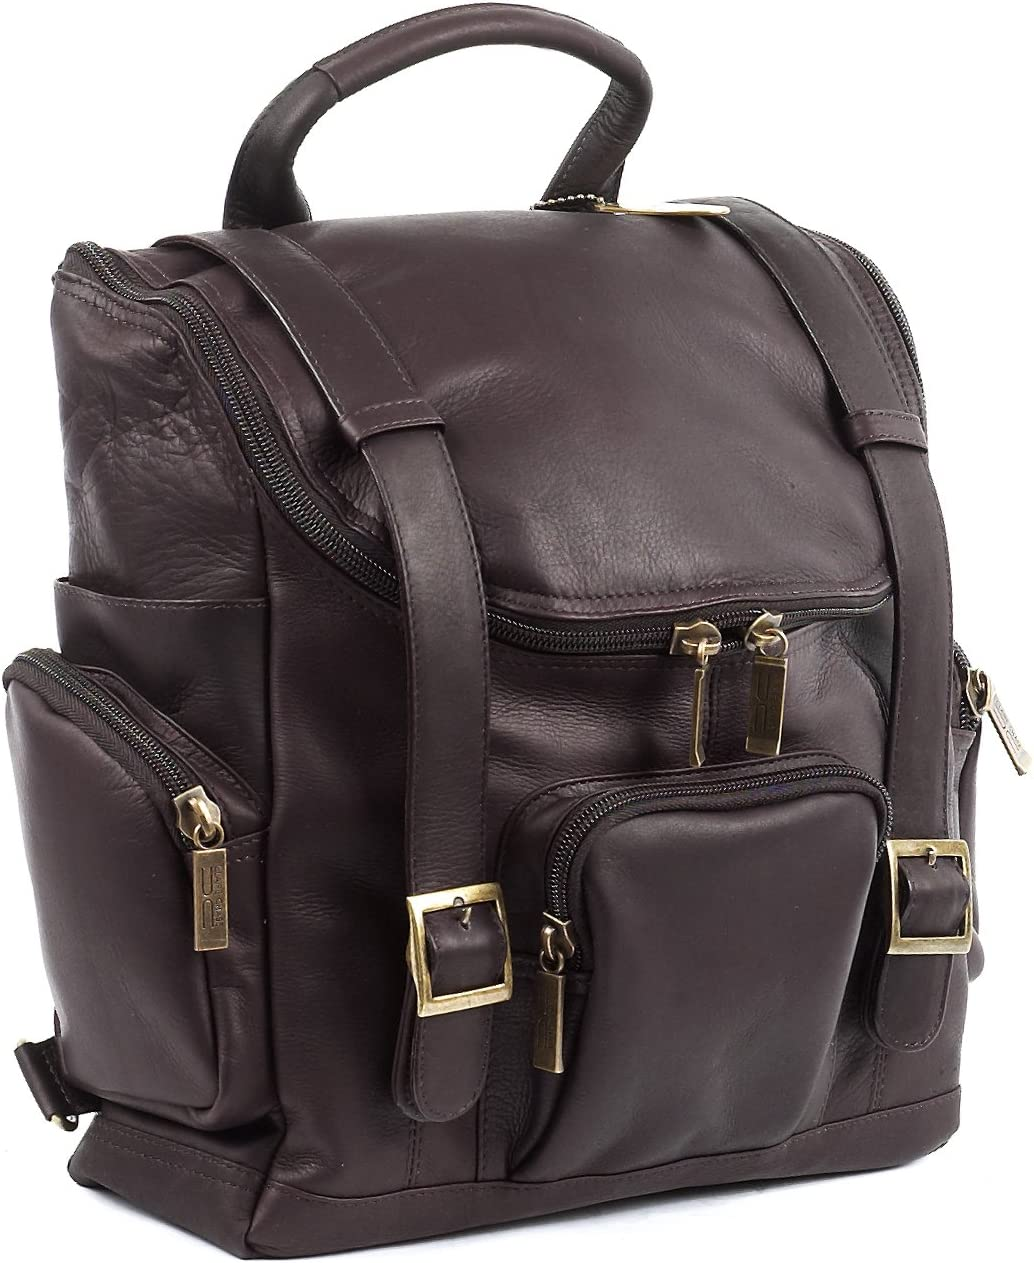 Claire Chase Portifino Back Pack